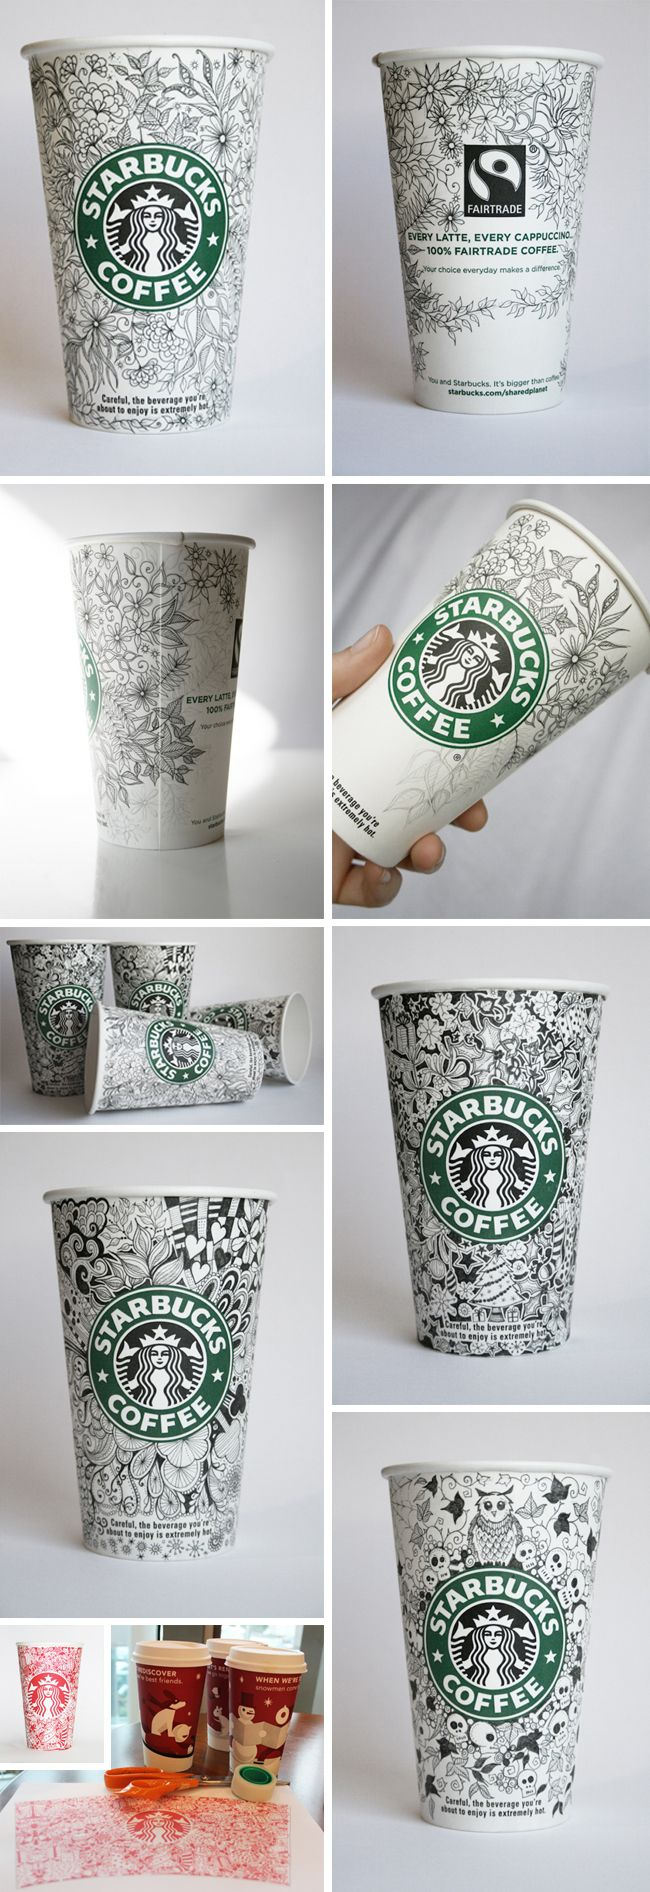 UK illustrator Johanna Basford campaigned to design the Starbucks cup (her dream job) which resulted with her actually getting commissioned by the company. www.johannabasford.com